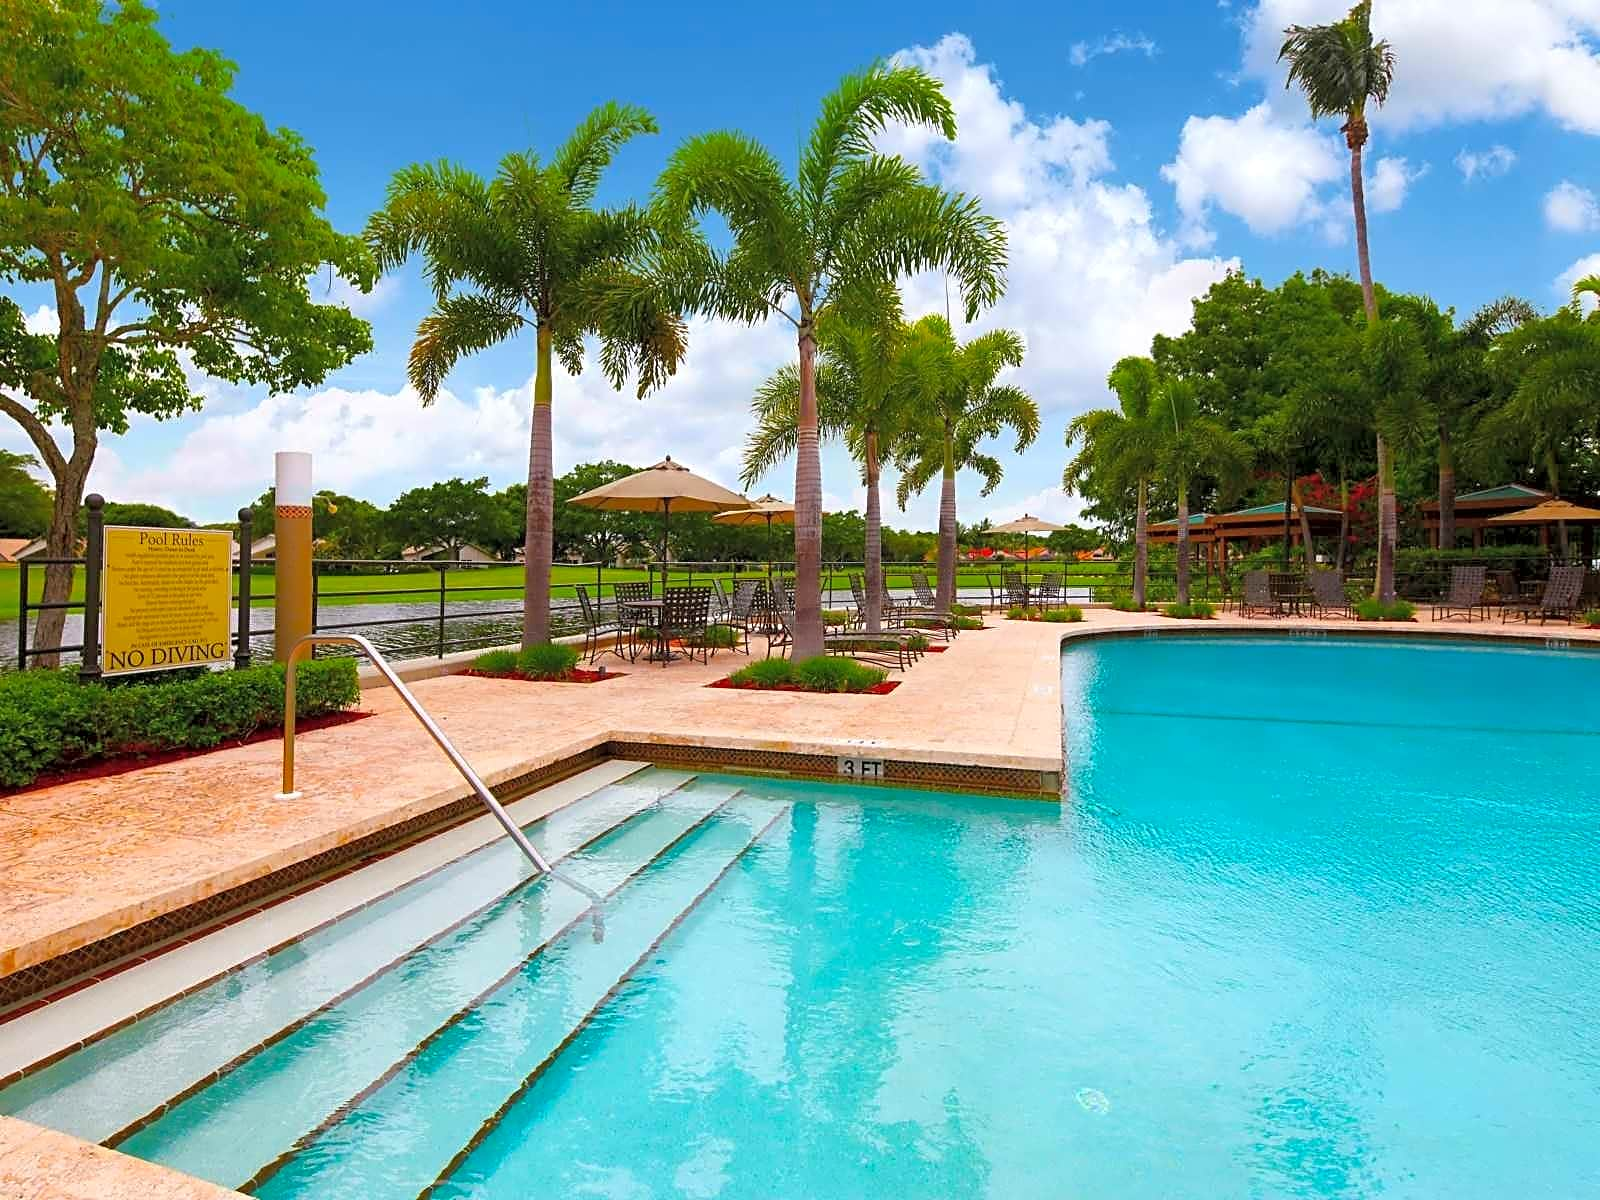 Apartments And Houses For Rent Near Me In Boca Raton